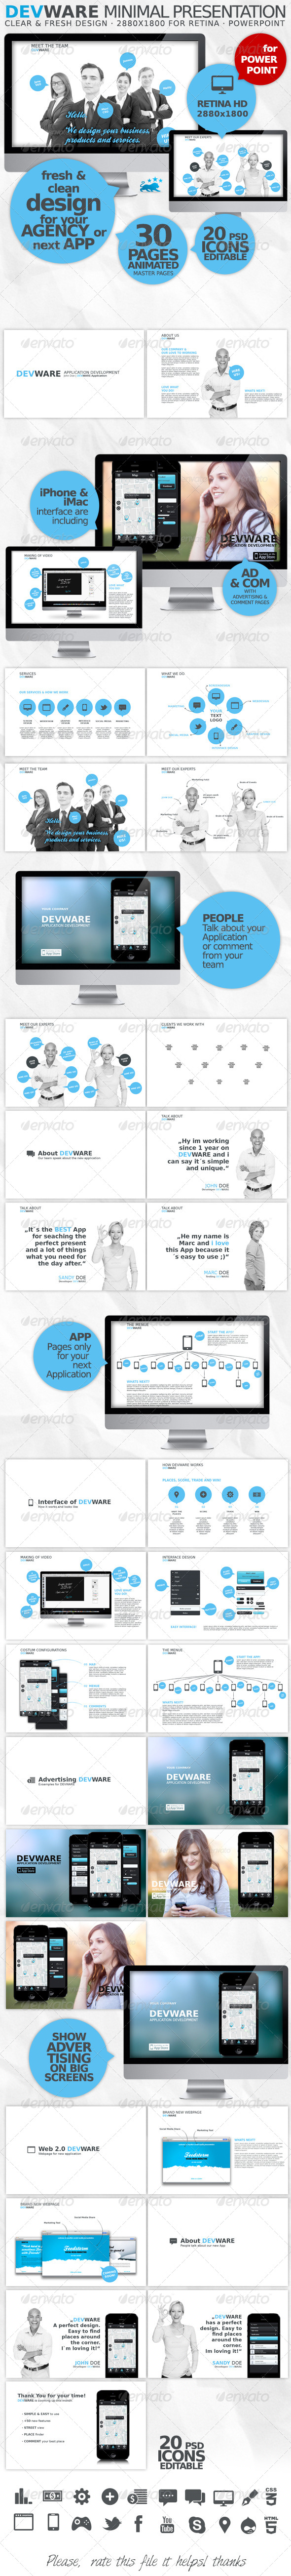 GraphicRiver DEVWARE 30 Pages PowerPoint Presentation 4458248